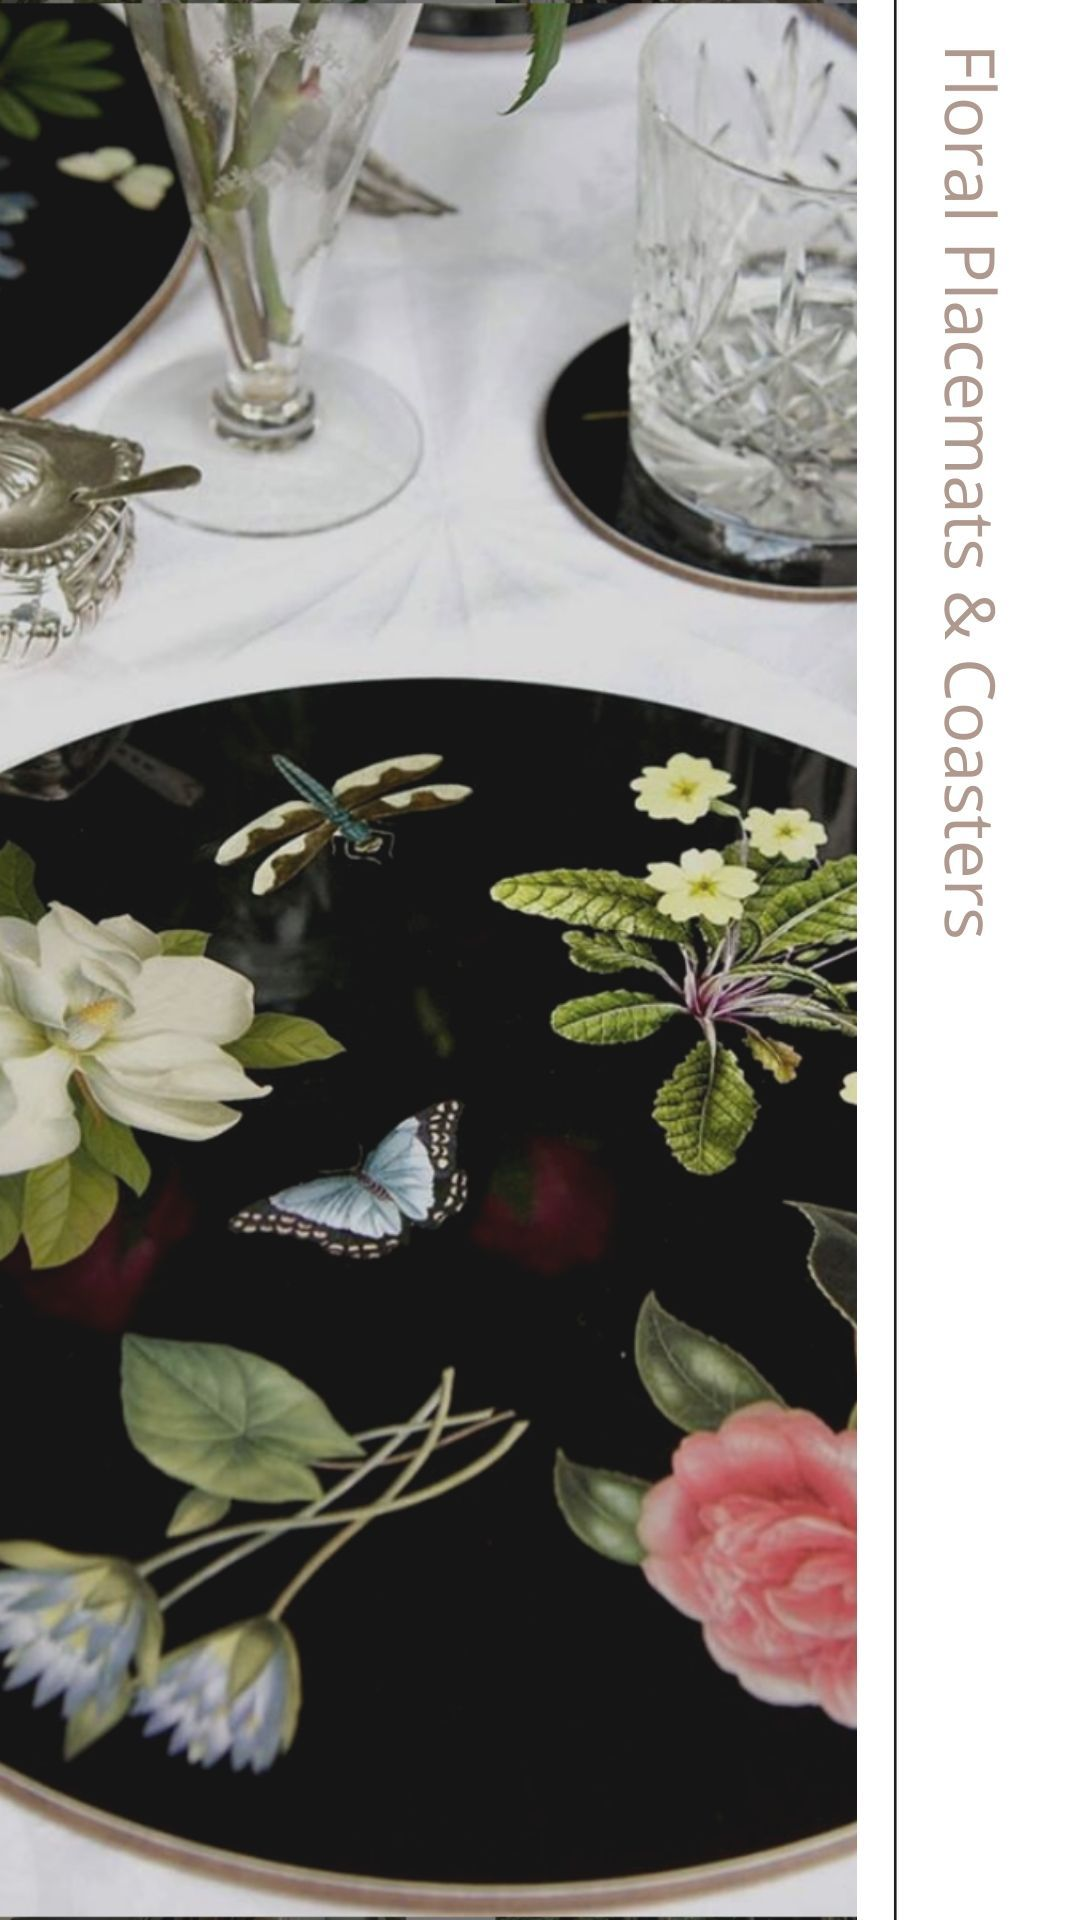 Floral Placemats Coasters At Scully Scully Floral Placemats Placemats Floral